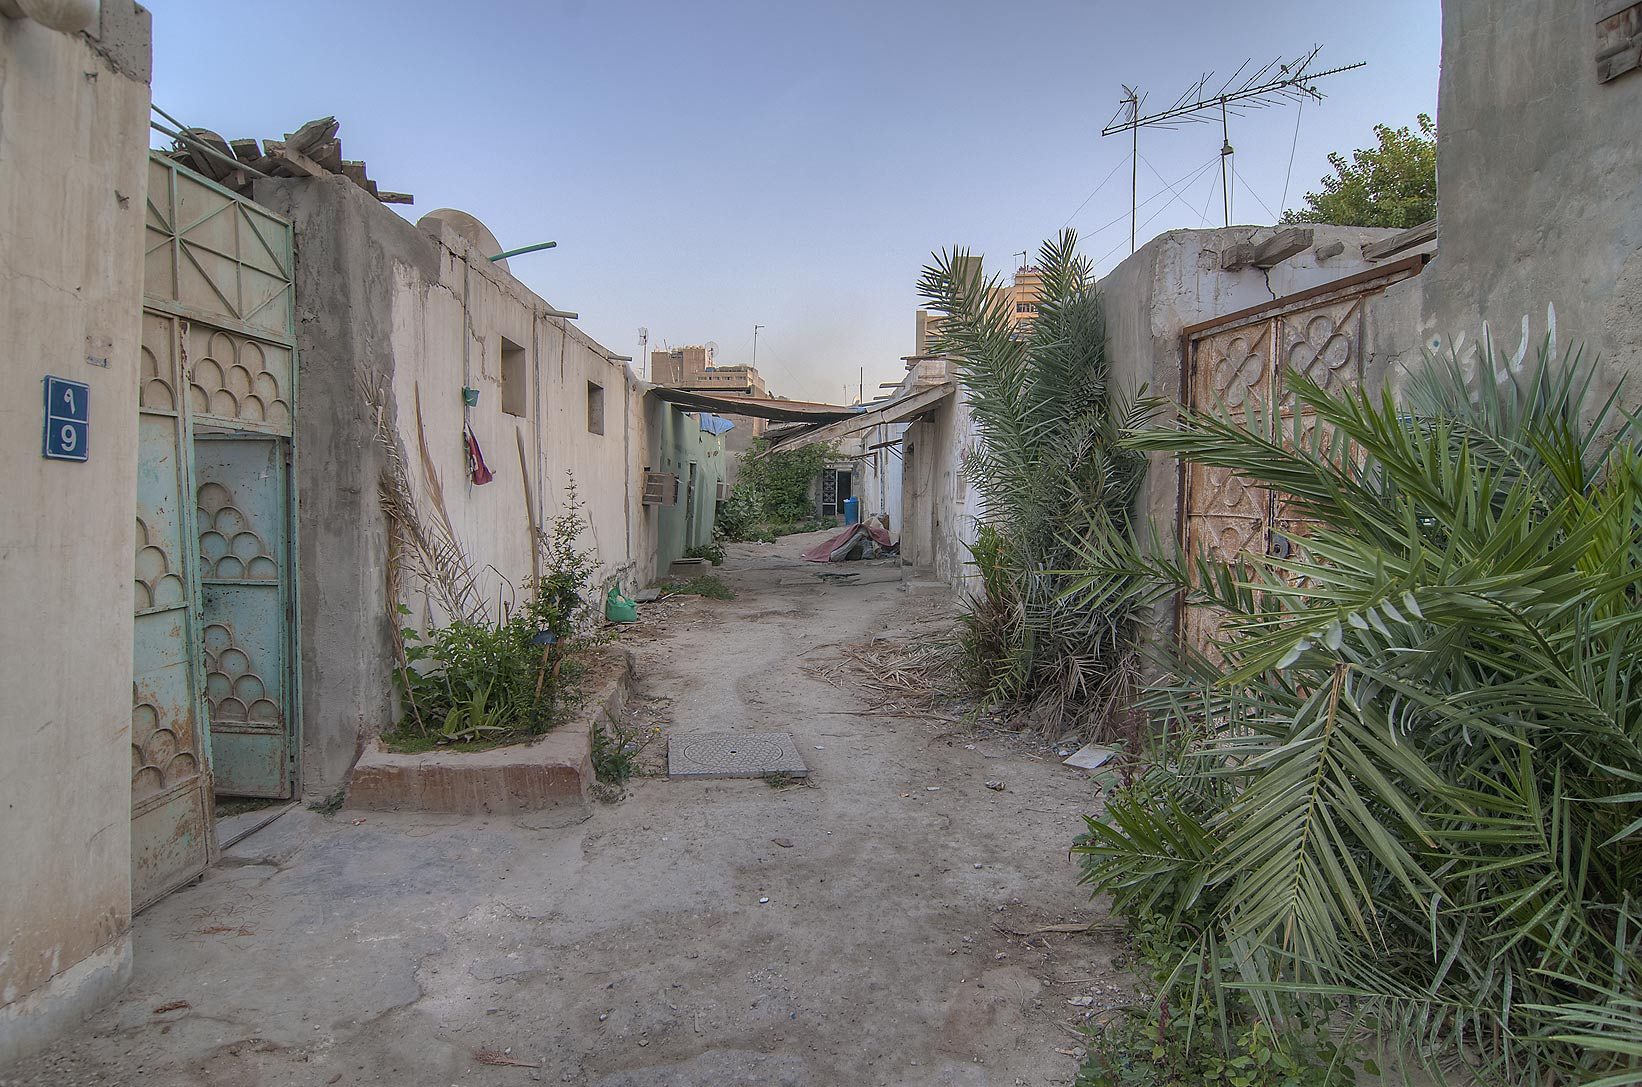 Alleyway separating residential units (sikka...St., Musheirib area. Doha, Qatar